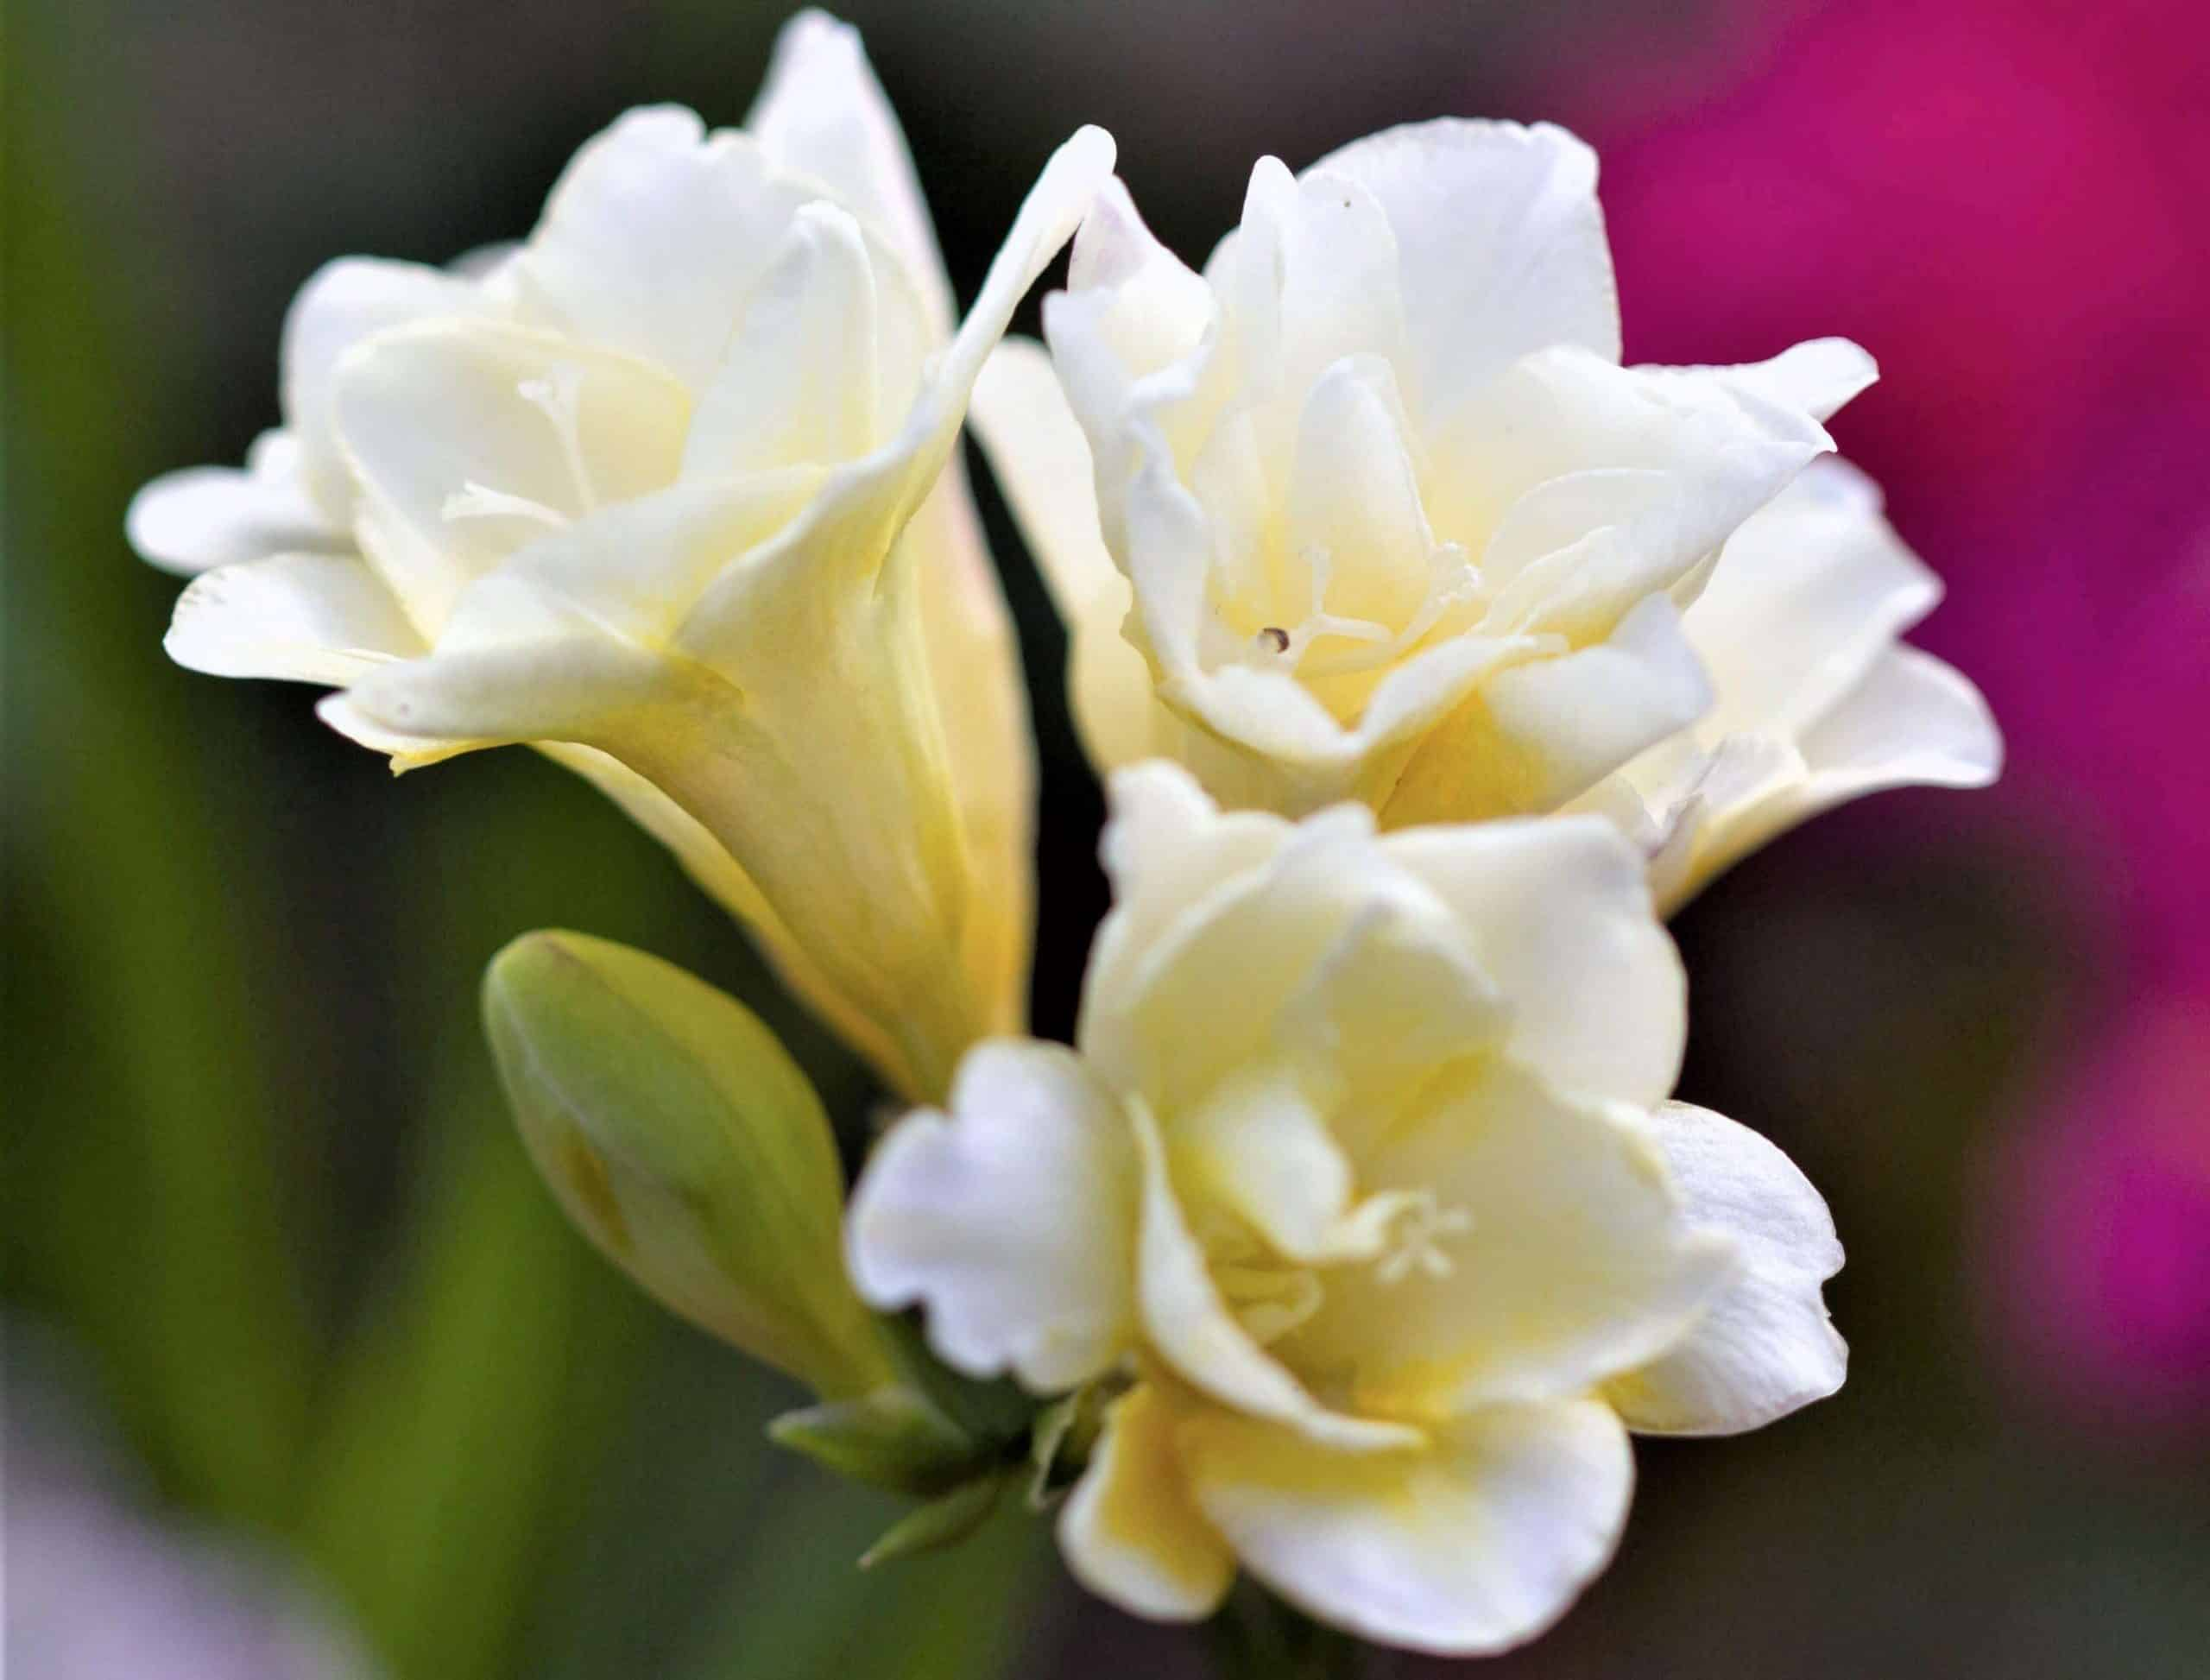 Most fragrant flowers - freesia